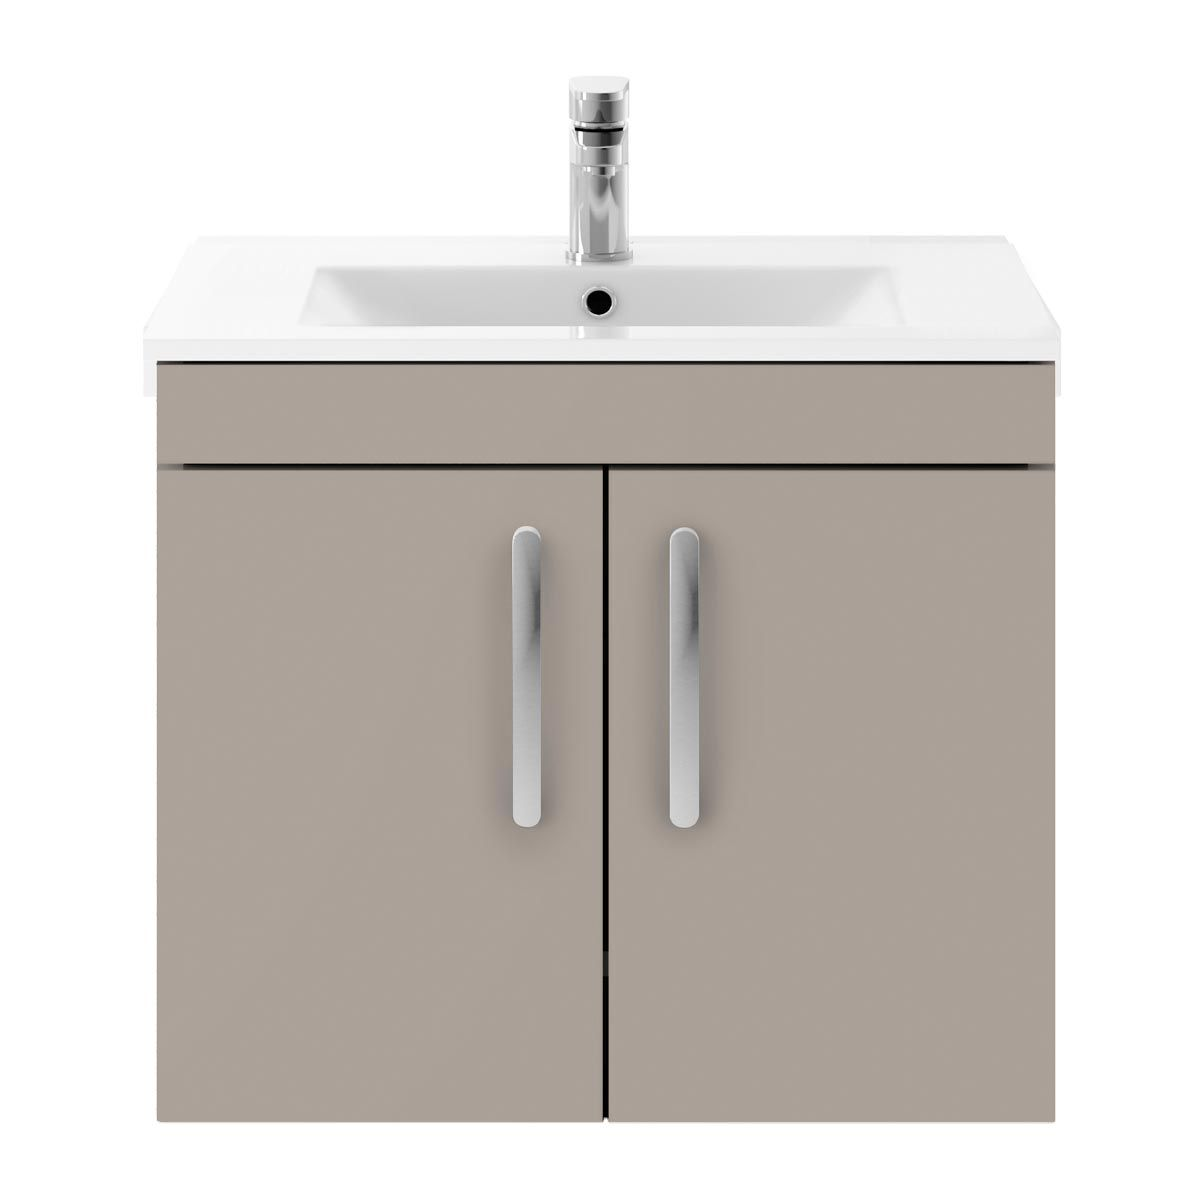 Nuie Athena Stone Grey 2 Door Wall Hung Vanity Unit with 18mm Profile Basin 600mm